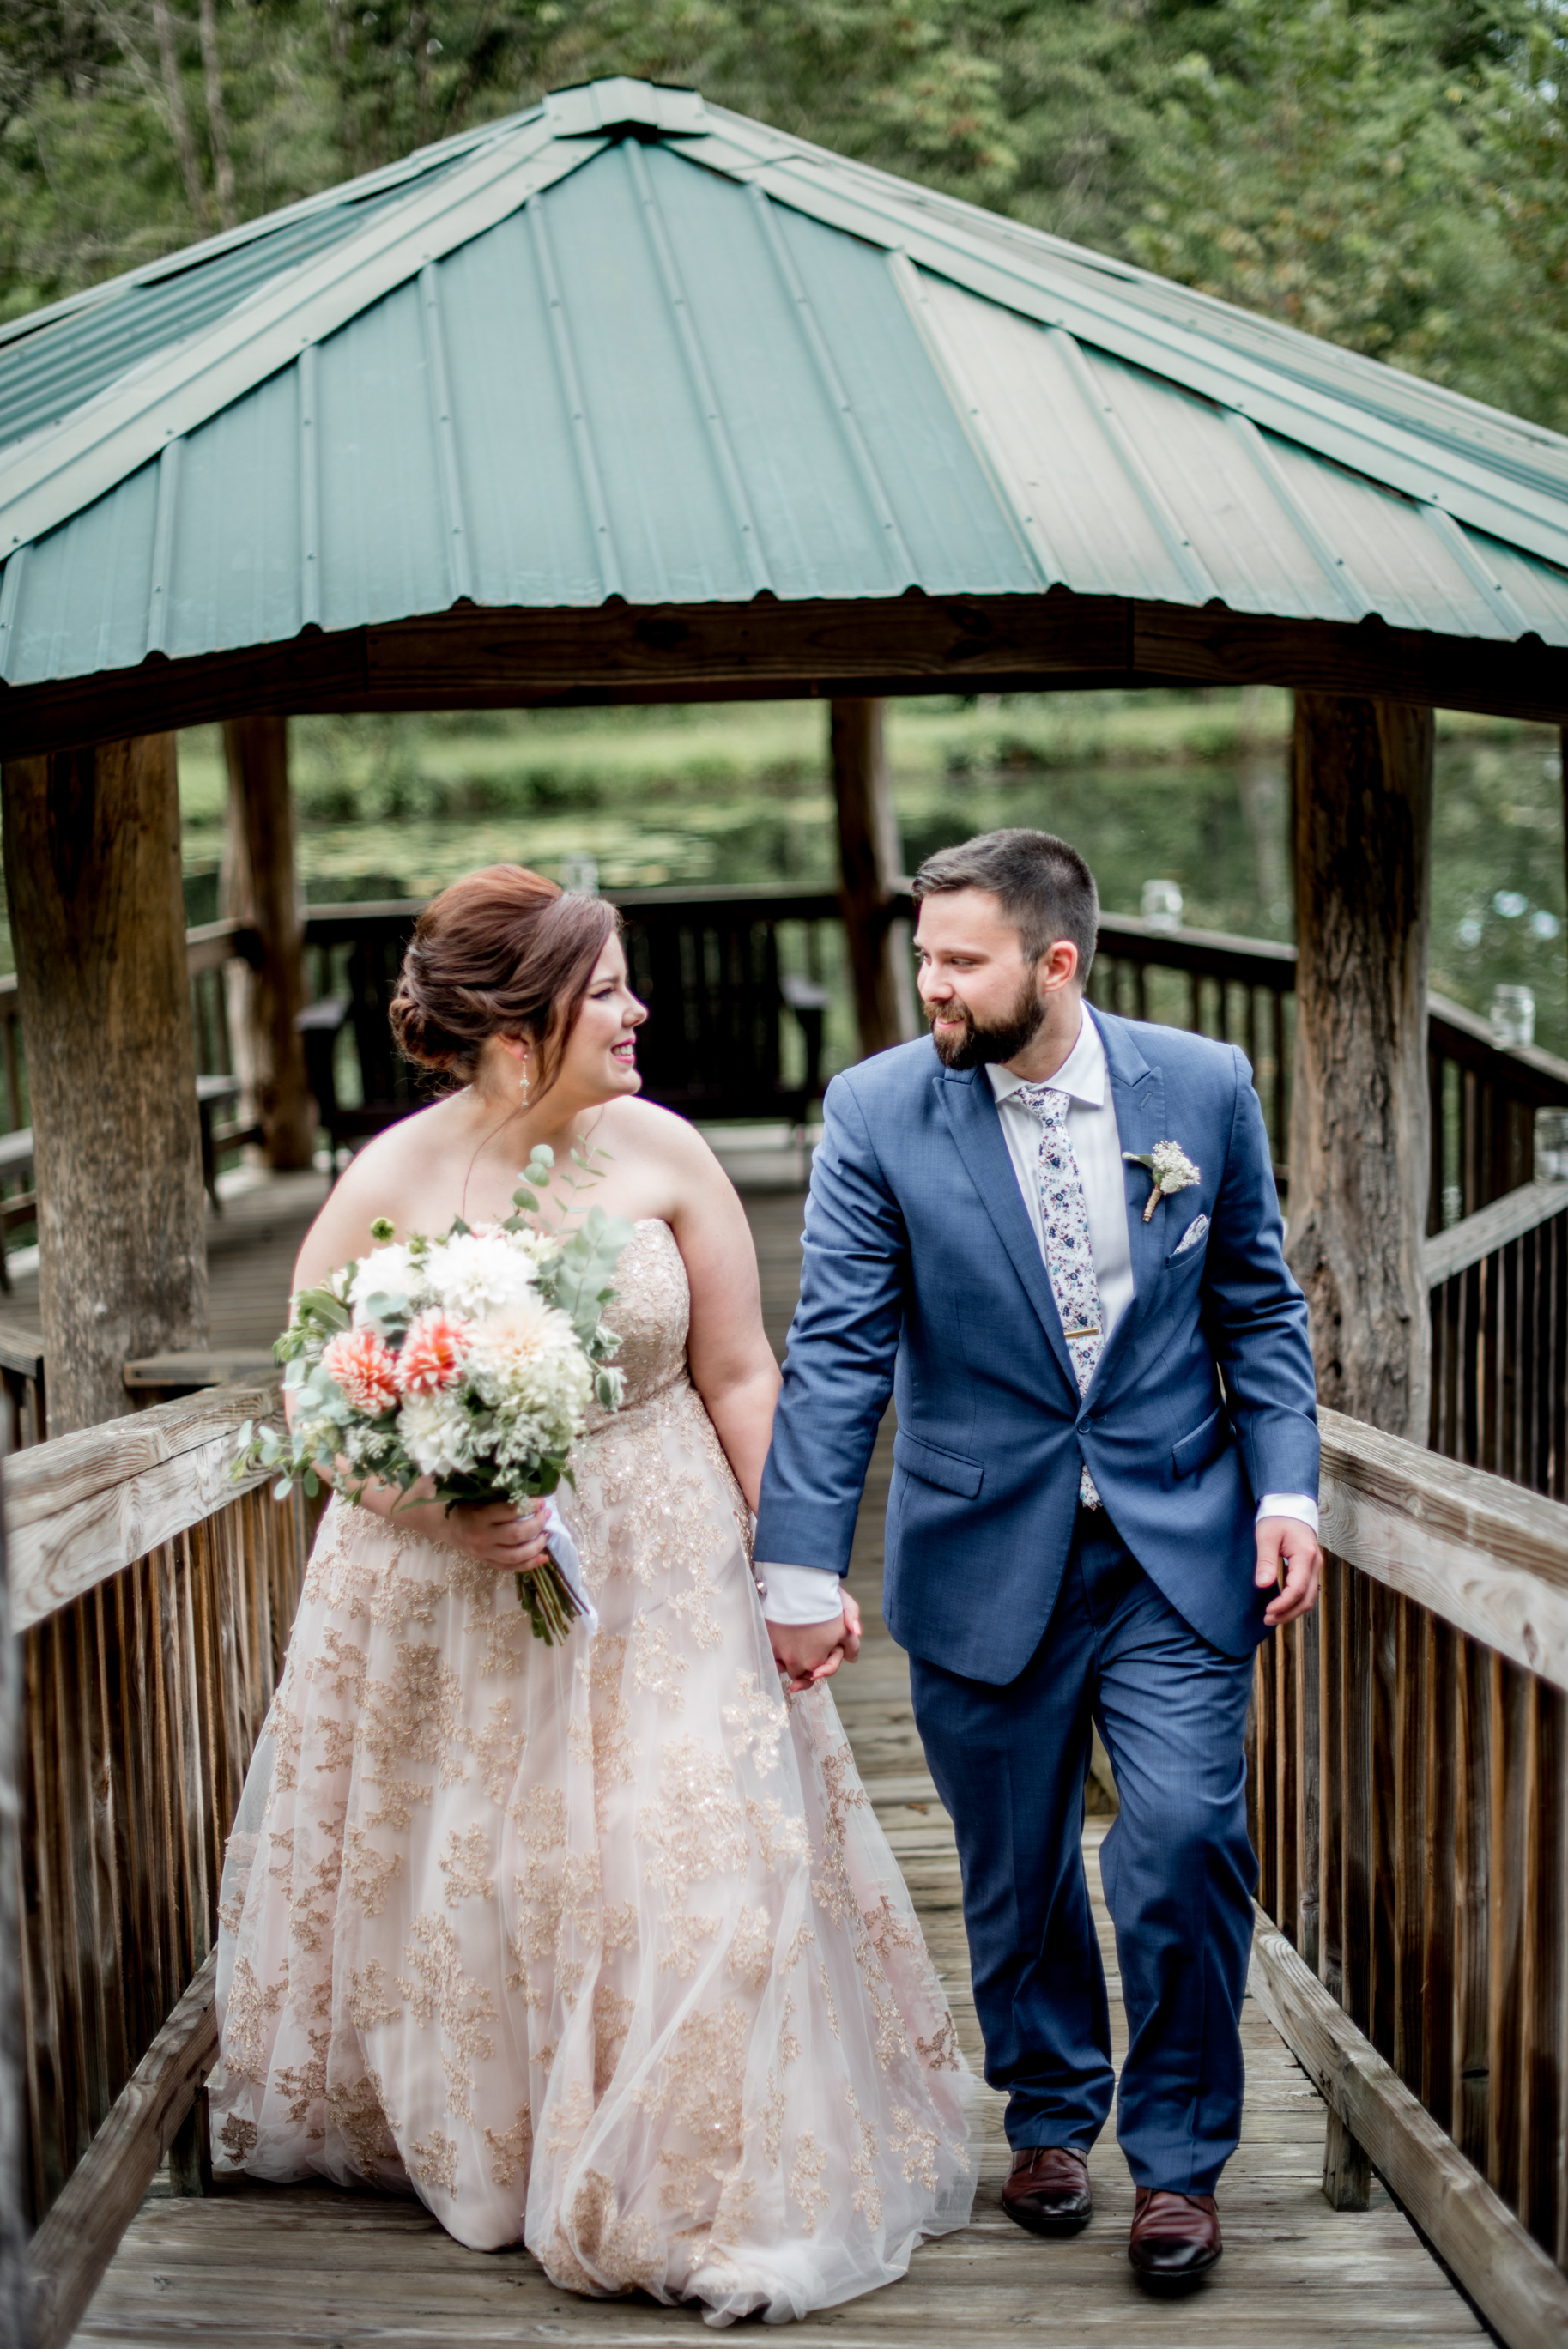 Bride and groom stroll along bridge over pond for romantic first look